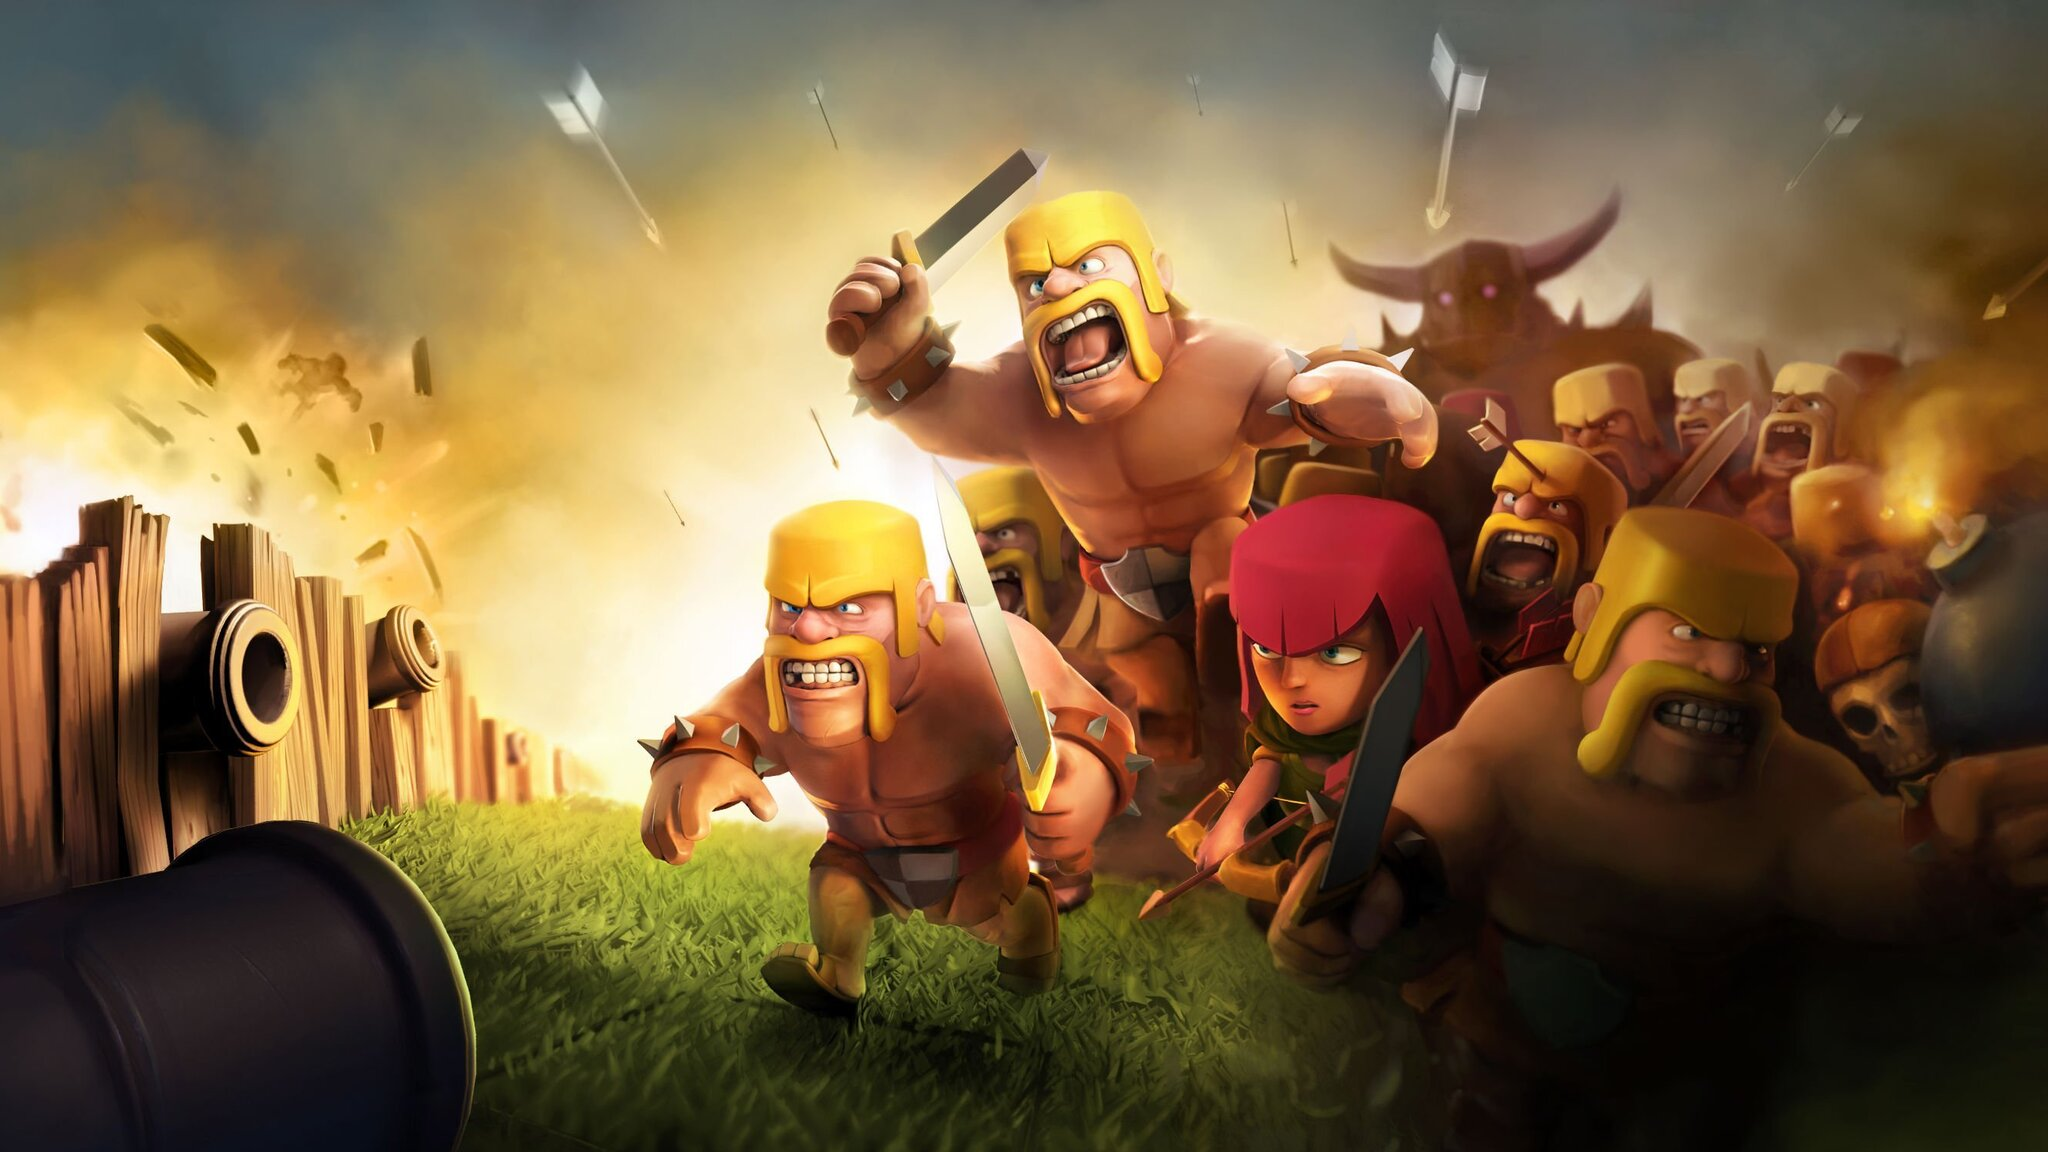 2048x1152 Clash Of Clans Hd 2048x1152 Resolution Hd 4k Wallpapers